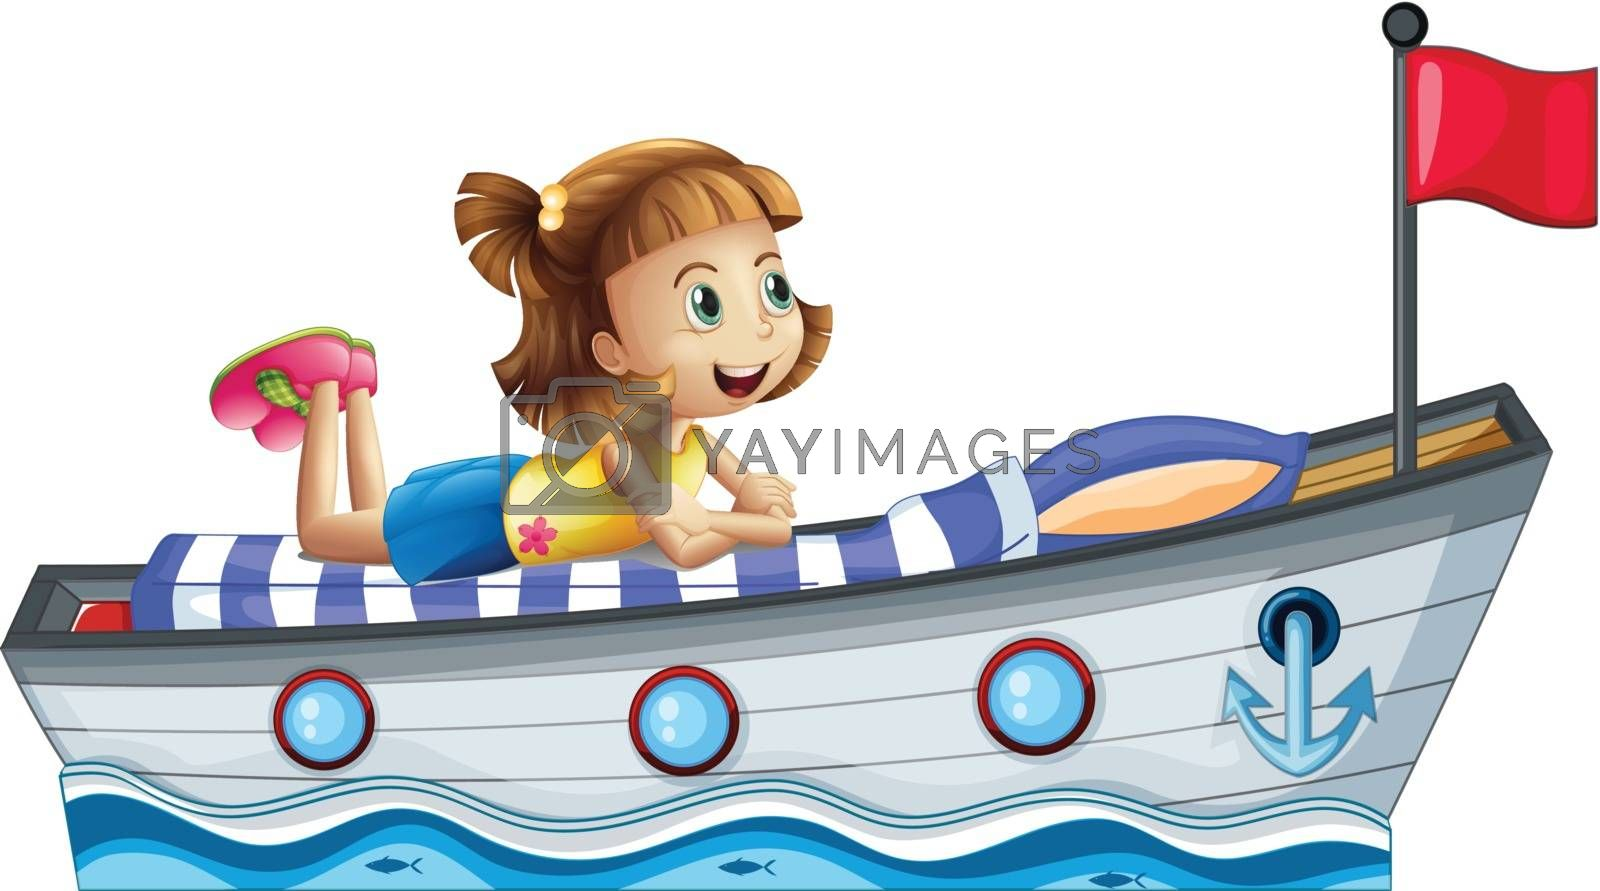 Royalty free image of A girl lying above the ship with a red flag by iimages